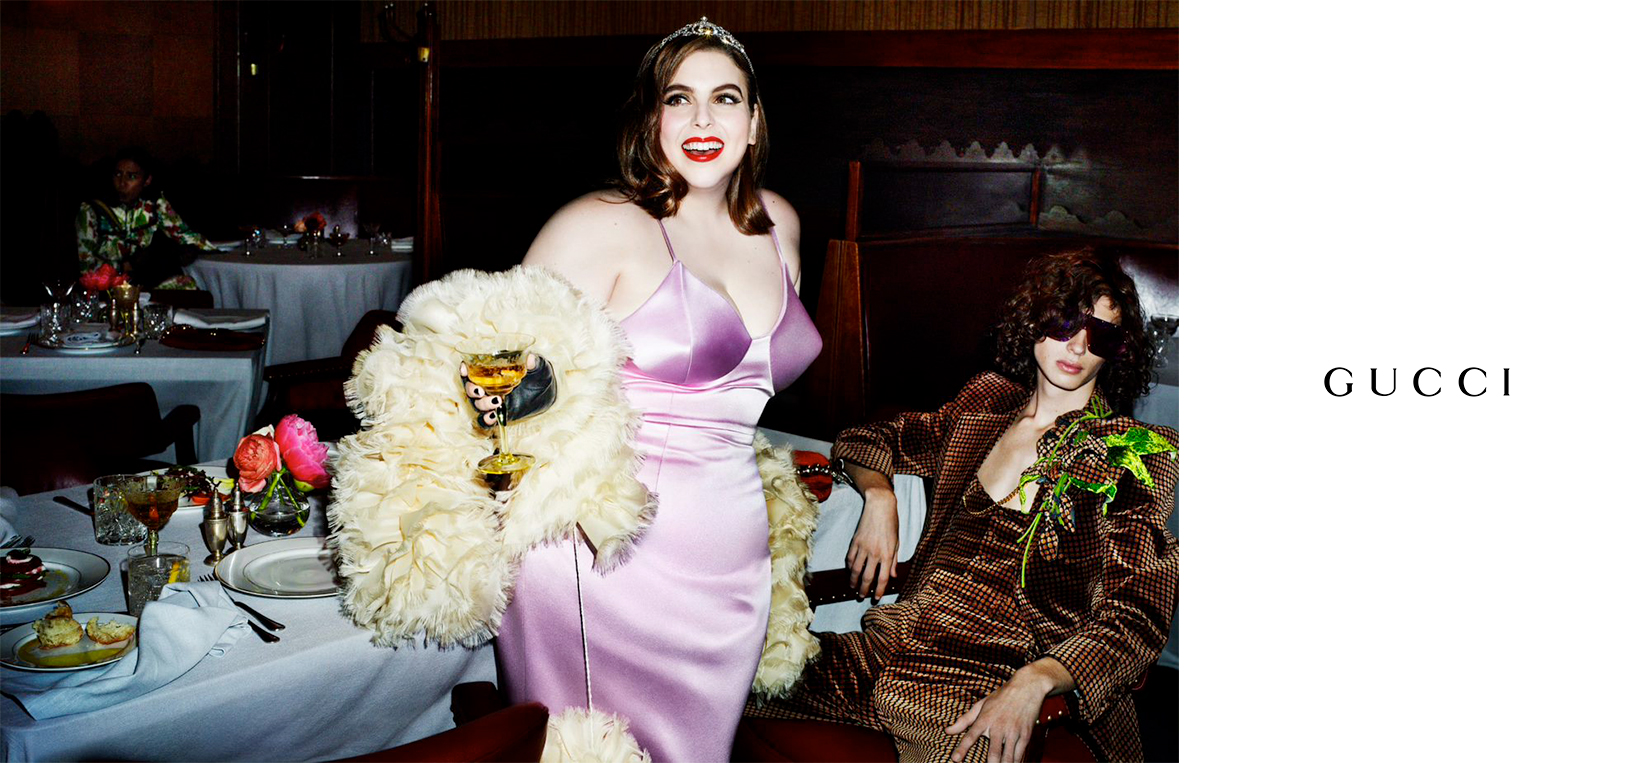 GUCCI - Women - Clothing - Leam Roma